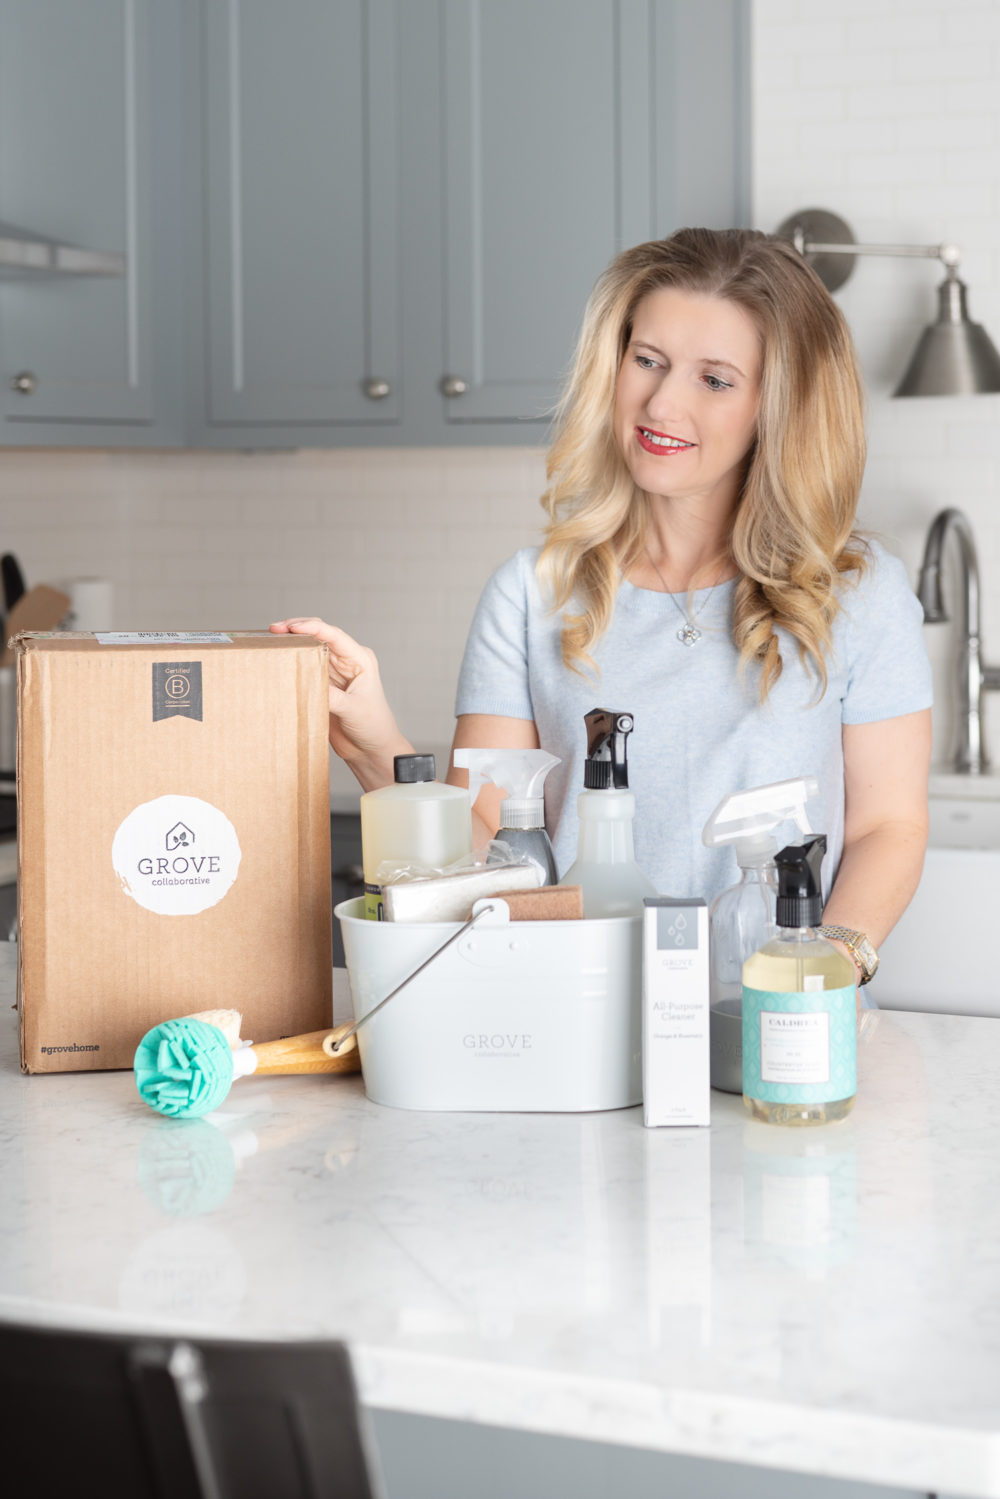 clean home with grove collaborative